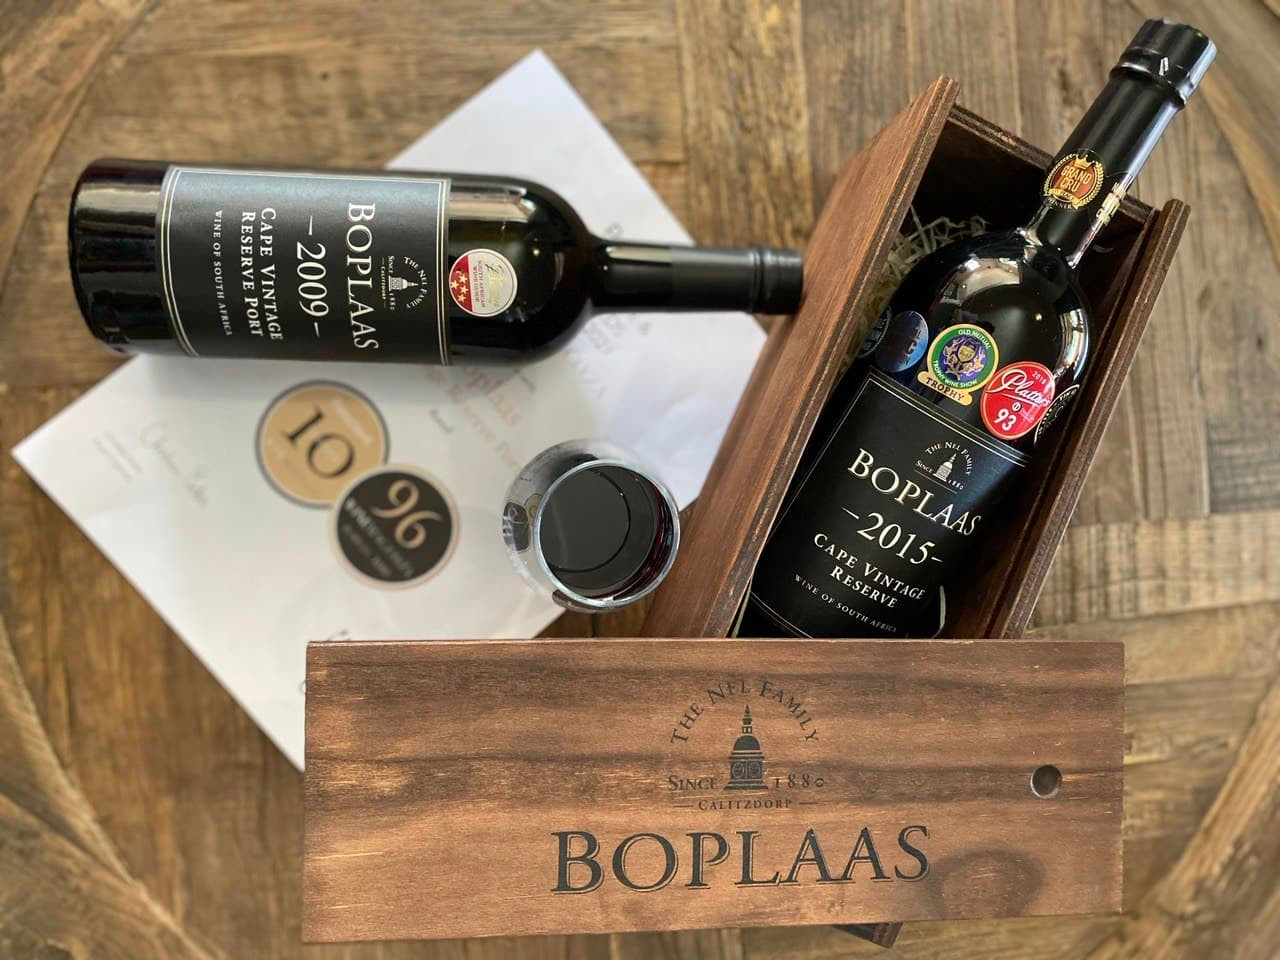 Boplaas Takes Top-spot In WineMag Contest photo